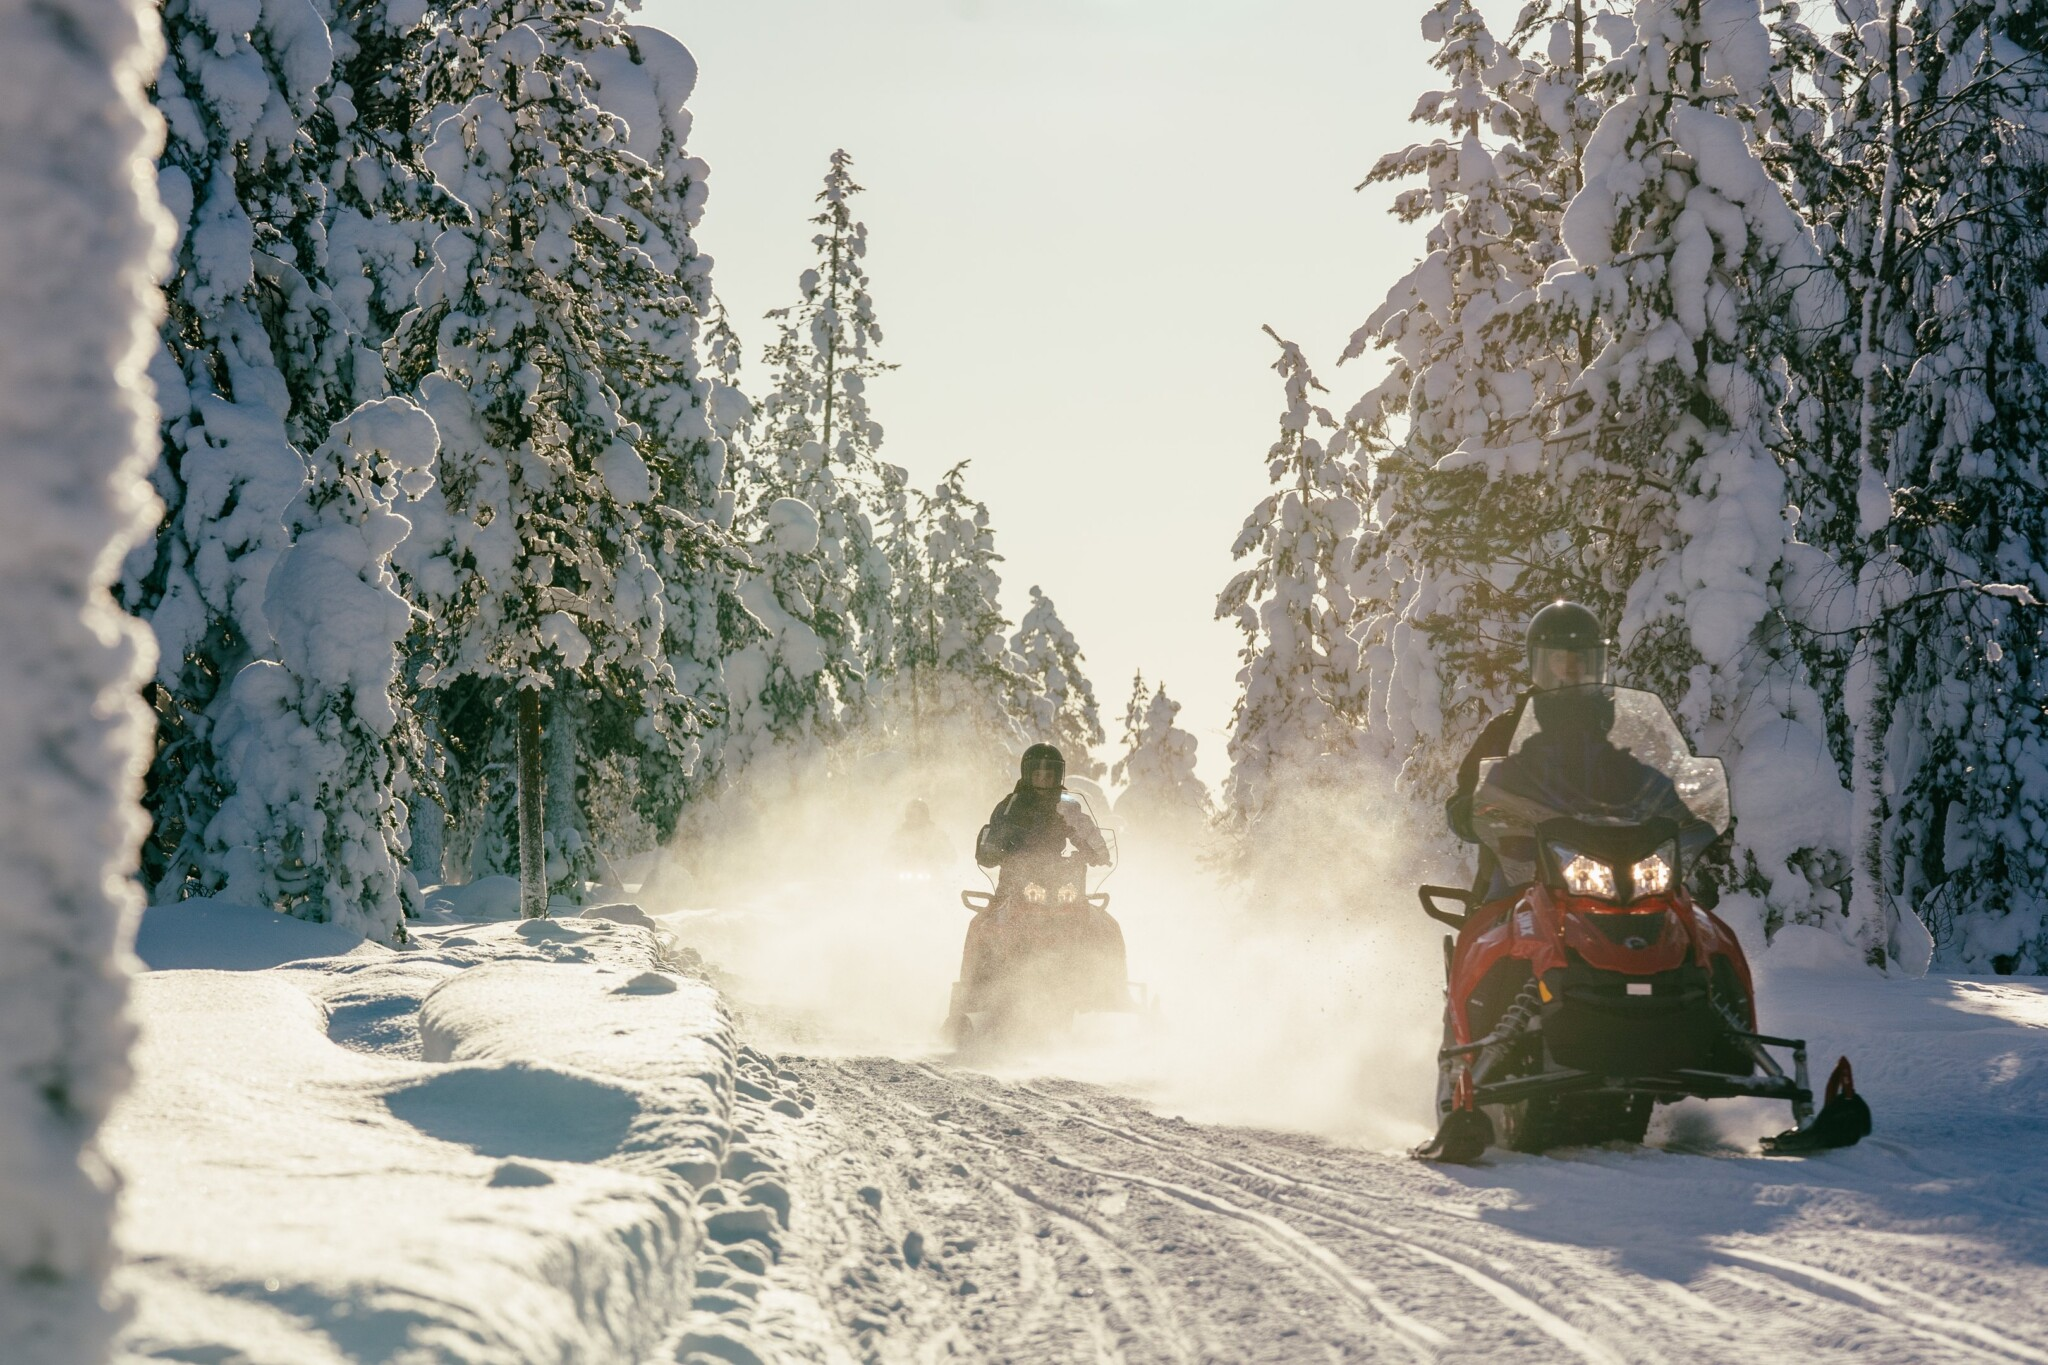 Snowmobile excursion in snowy winter forest, Rovaniemi, Lapland, Finland (10)